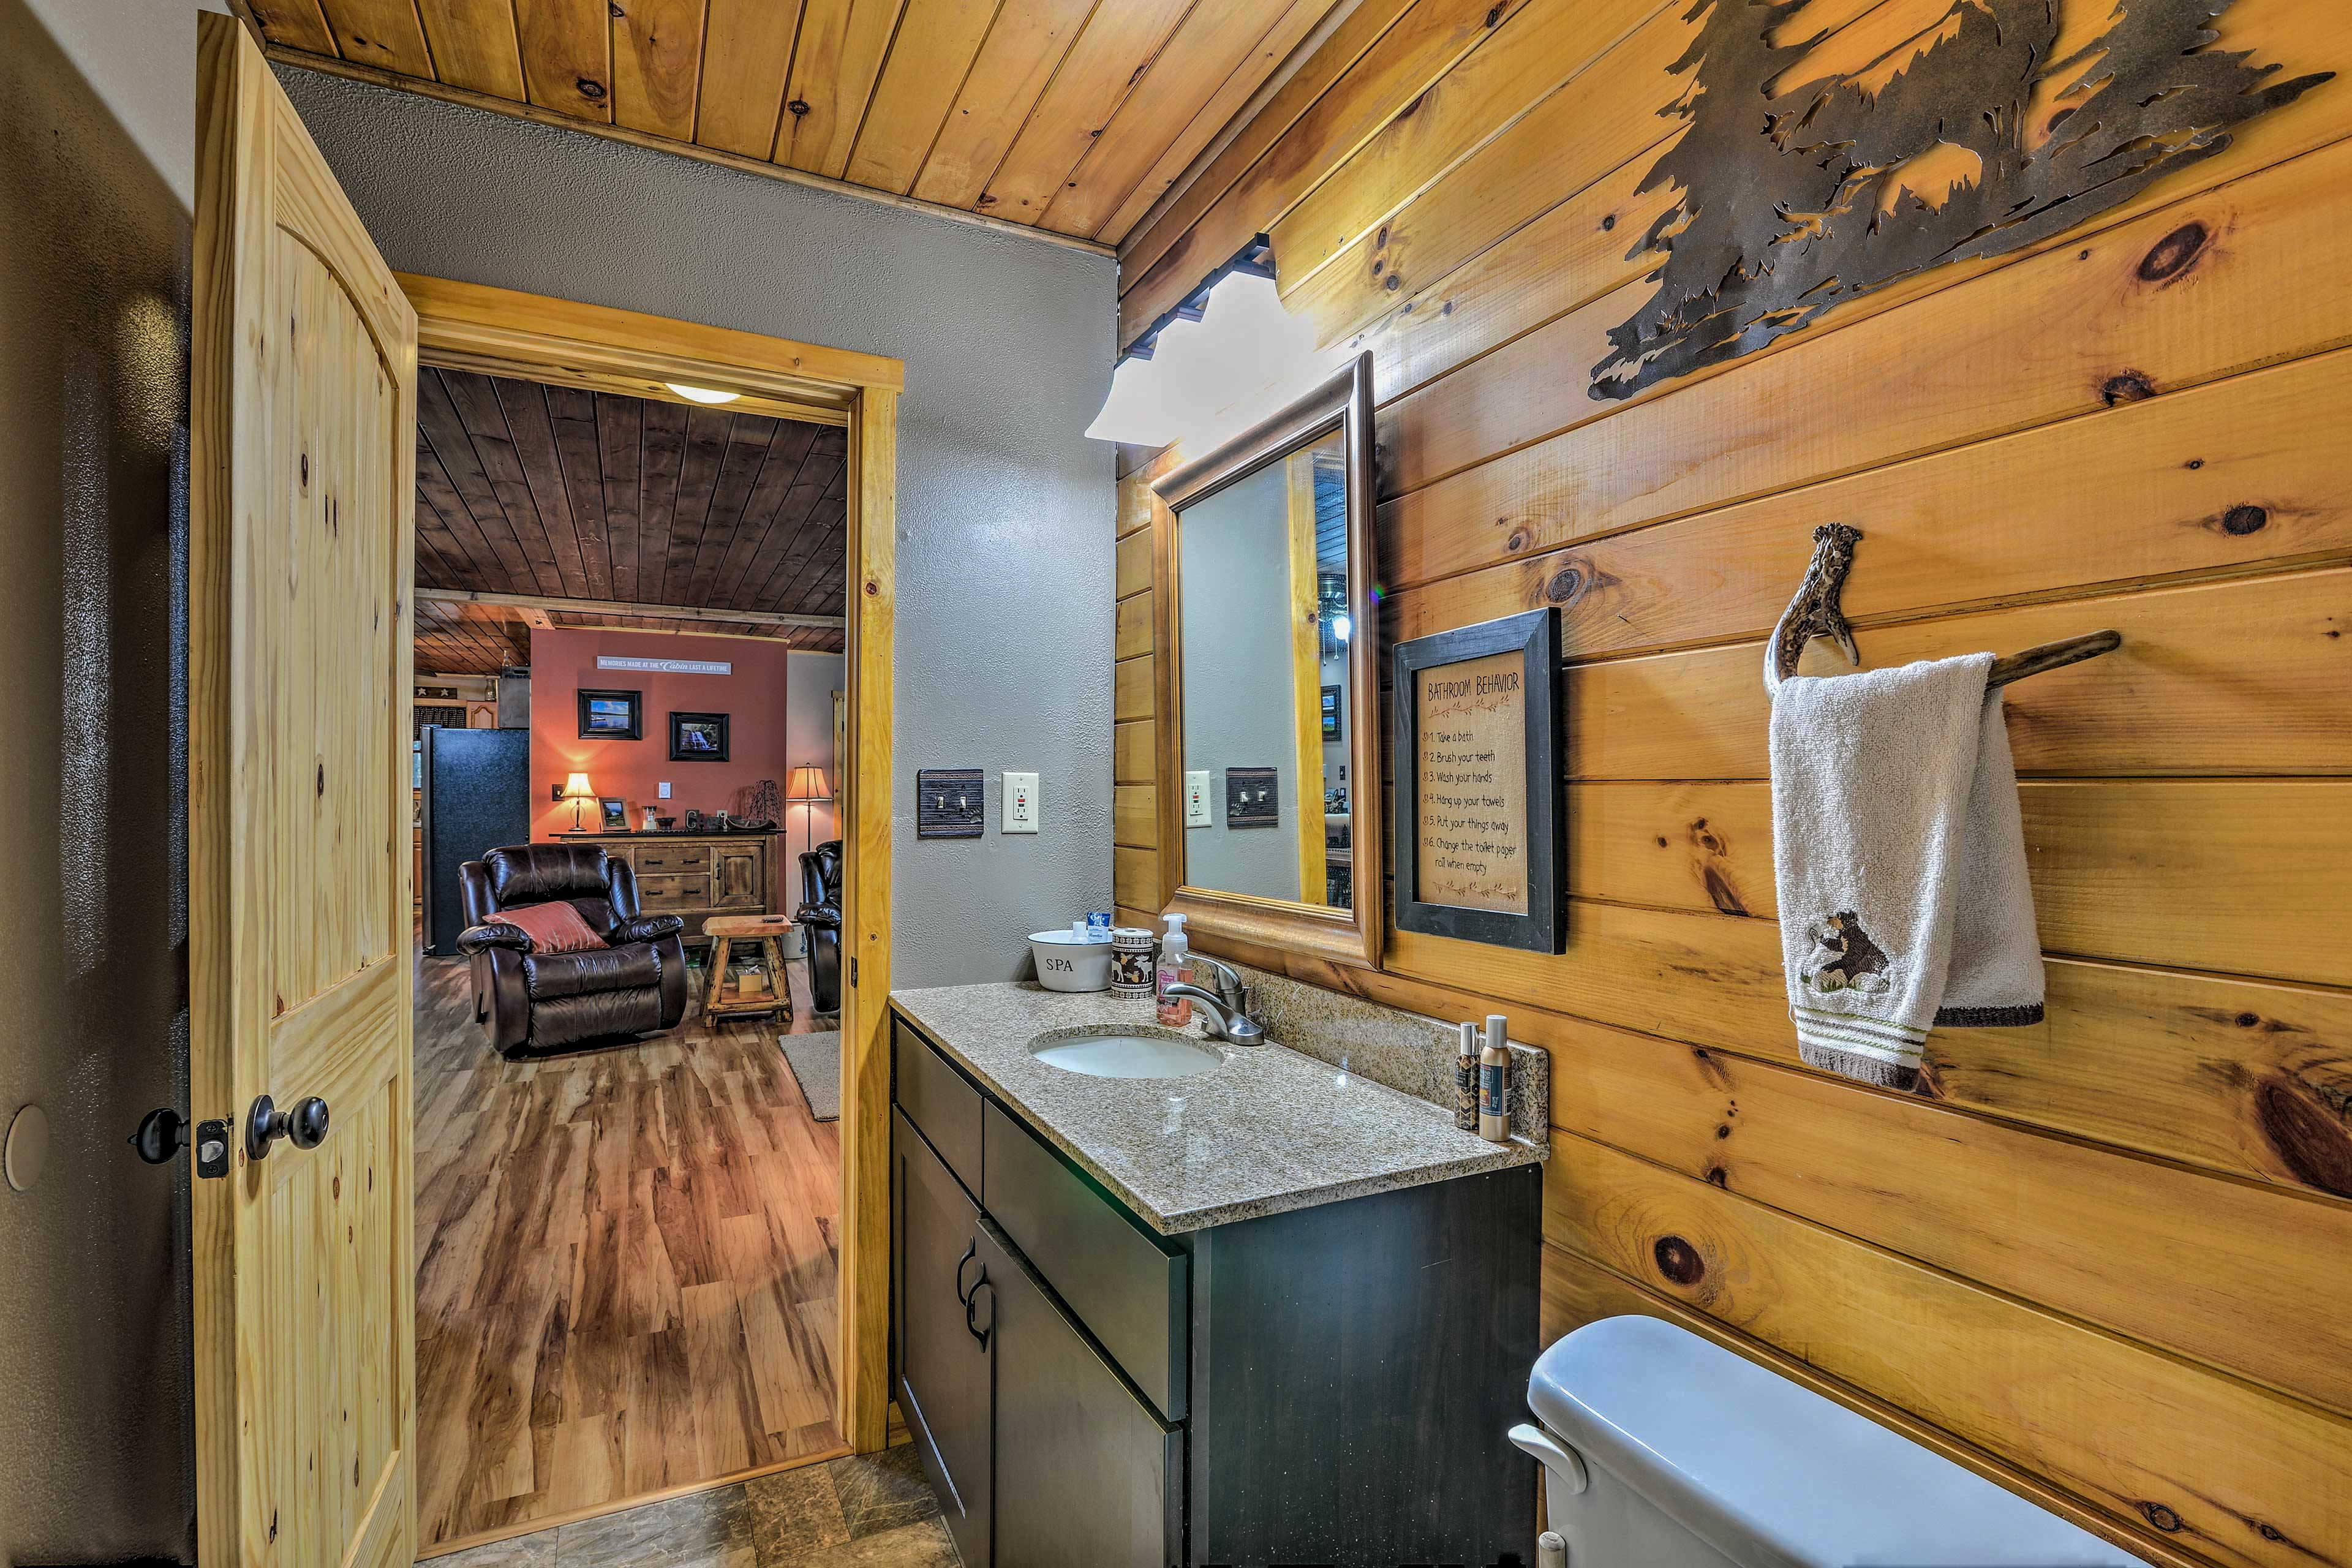 There are 2 full bathrooms in this home.